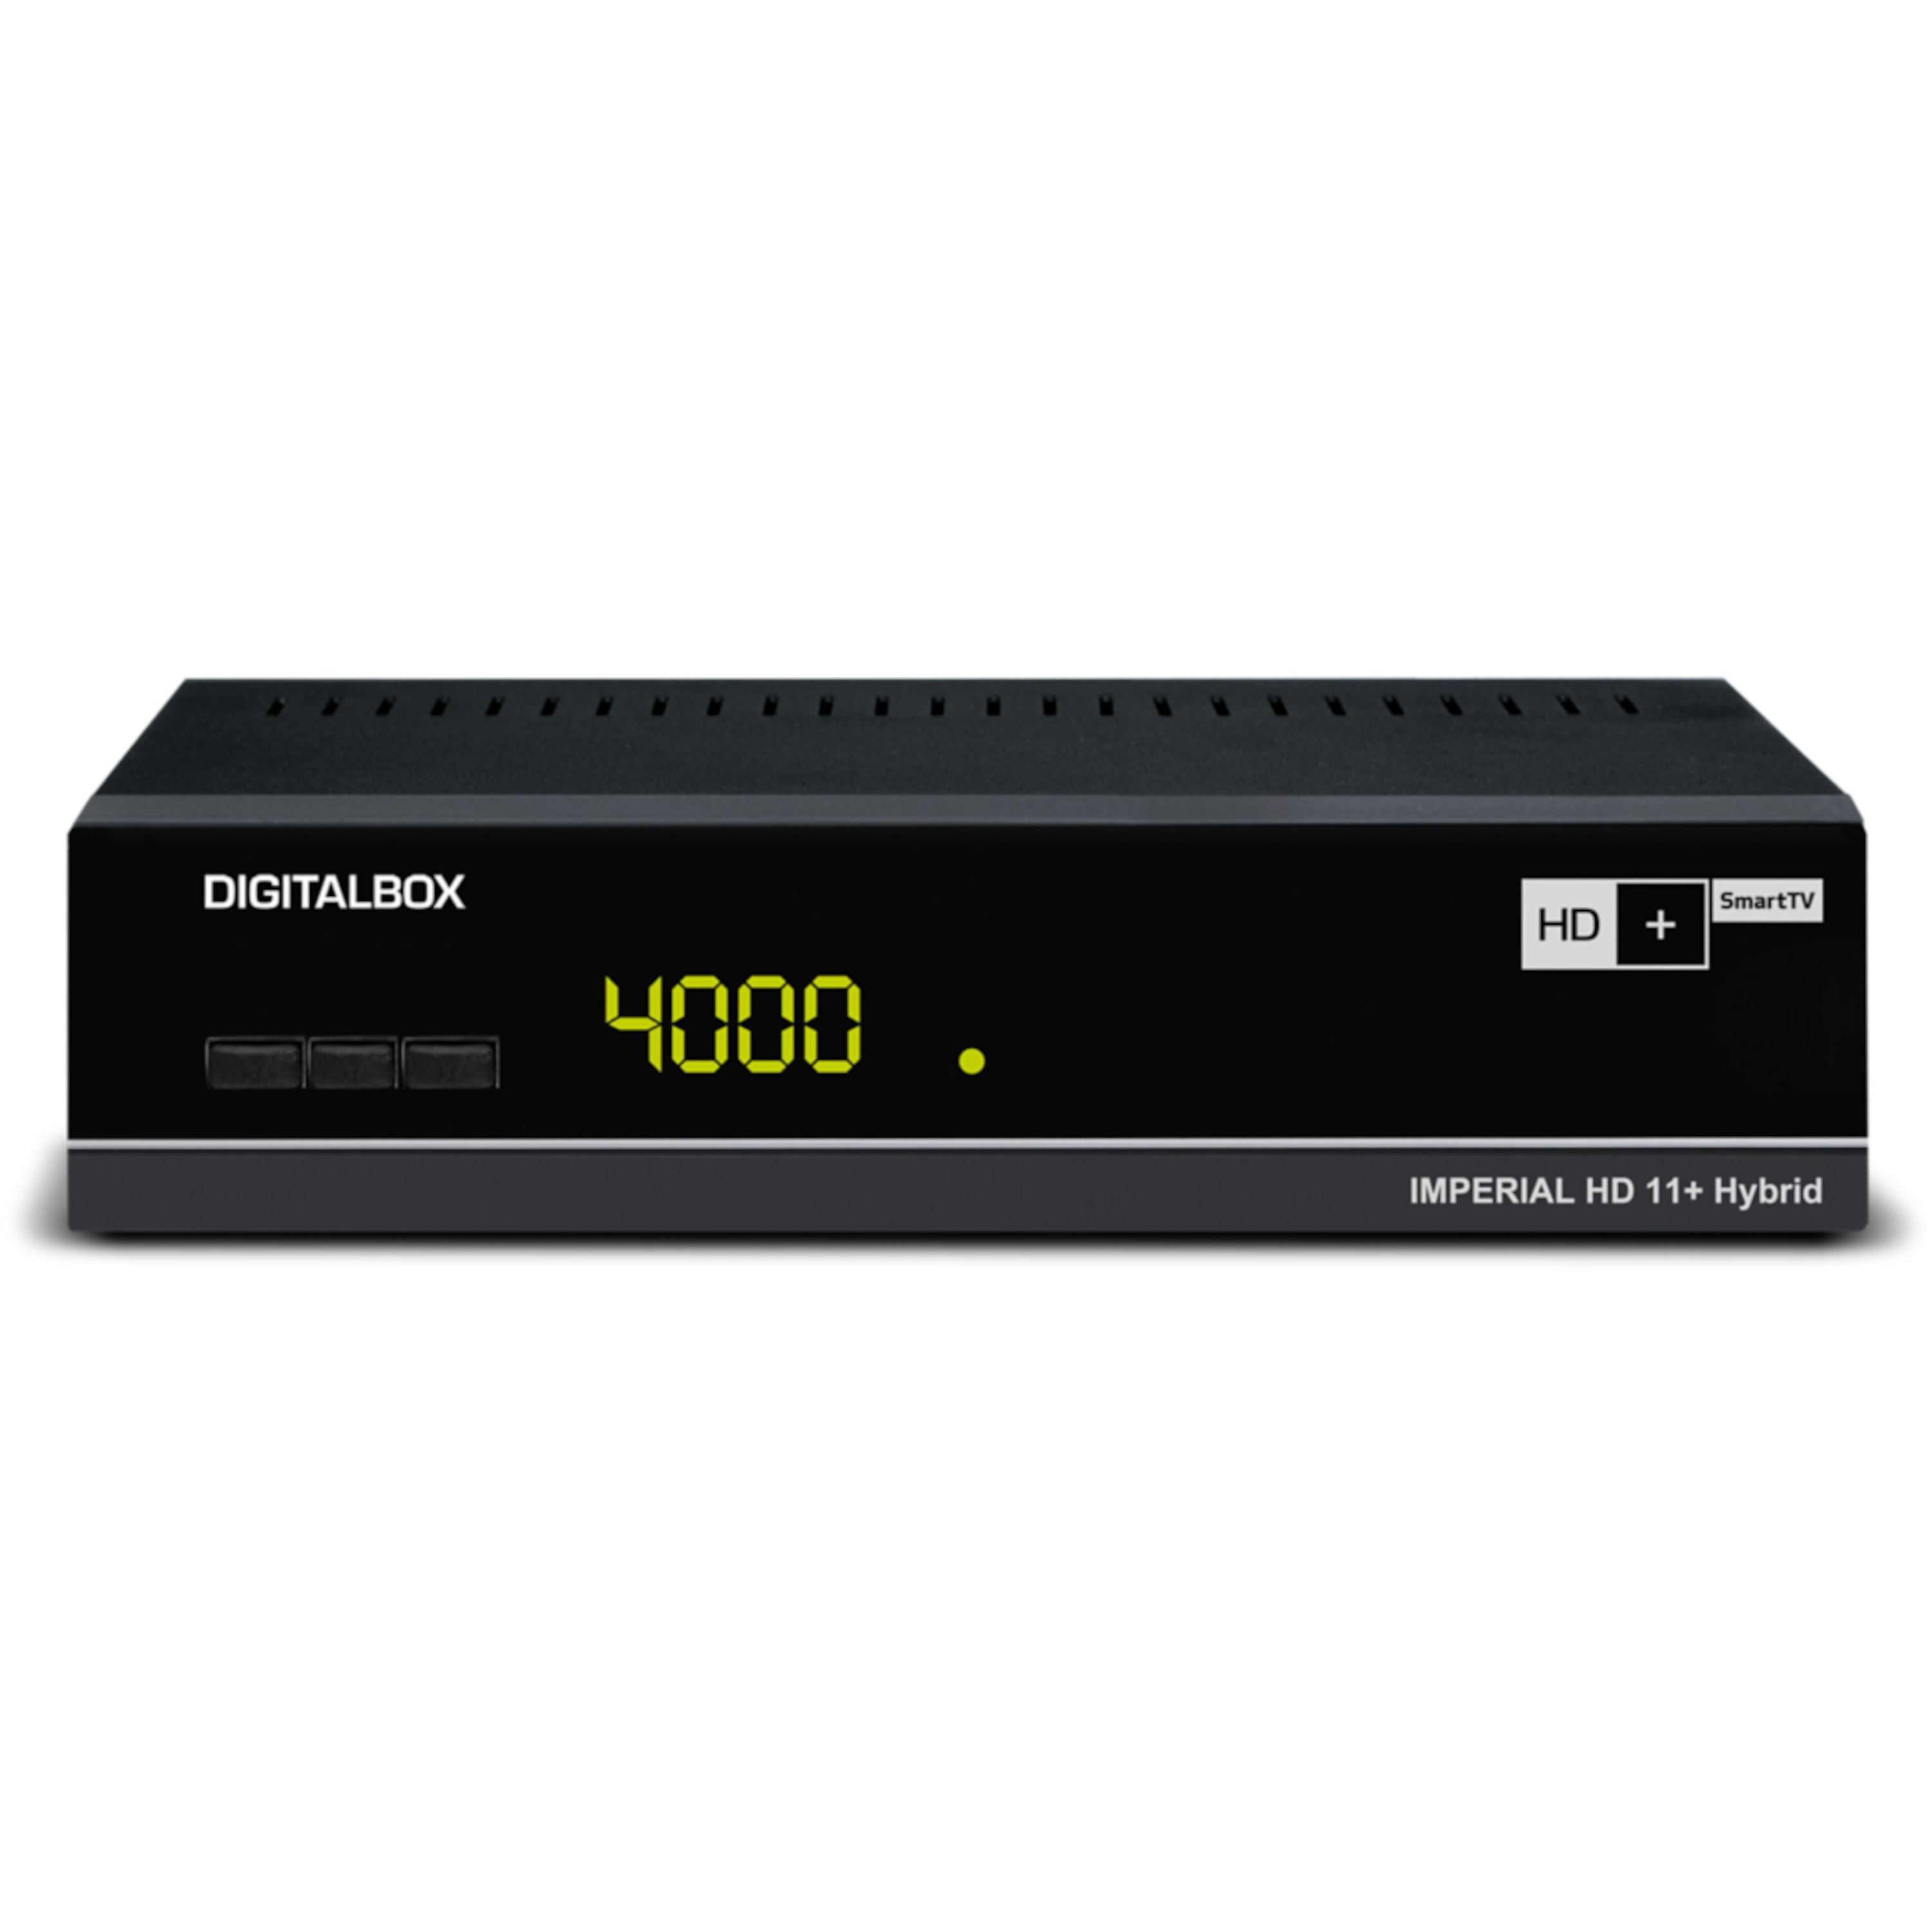 TELESTAR IMPERIAL HD 11+ Hybrid, Digitaler Satelliten-Receiver, HDTV, USB 2.0, PVR ready, Wlan, LAN, inkl. HD+ Karte für 6 Monate